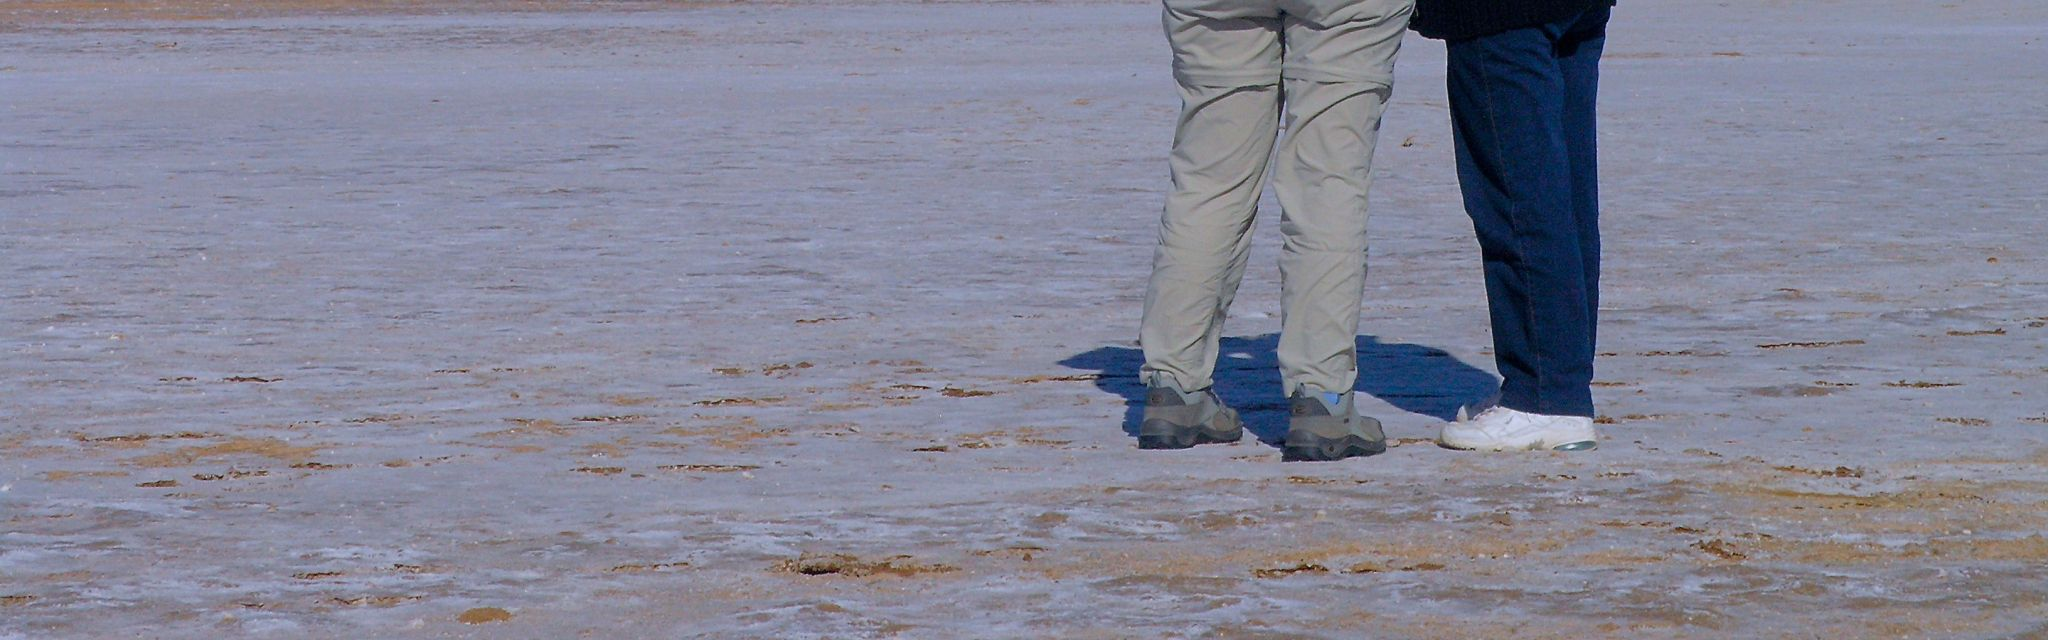 Trusty team members on Lake Eyre